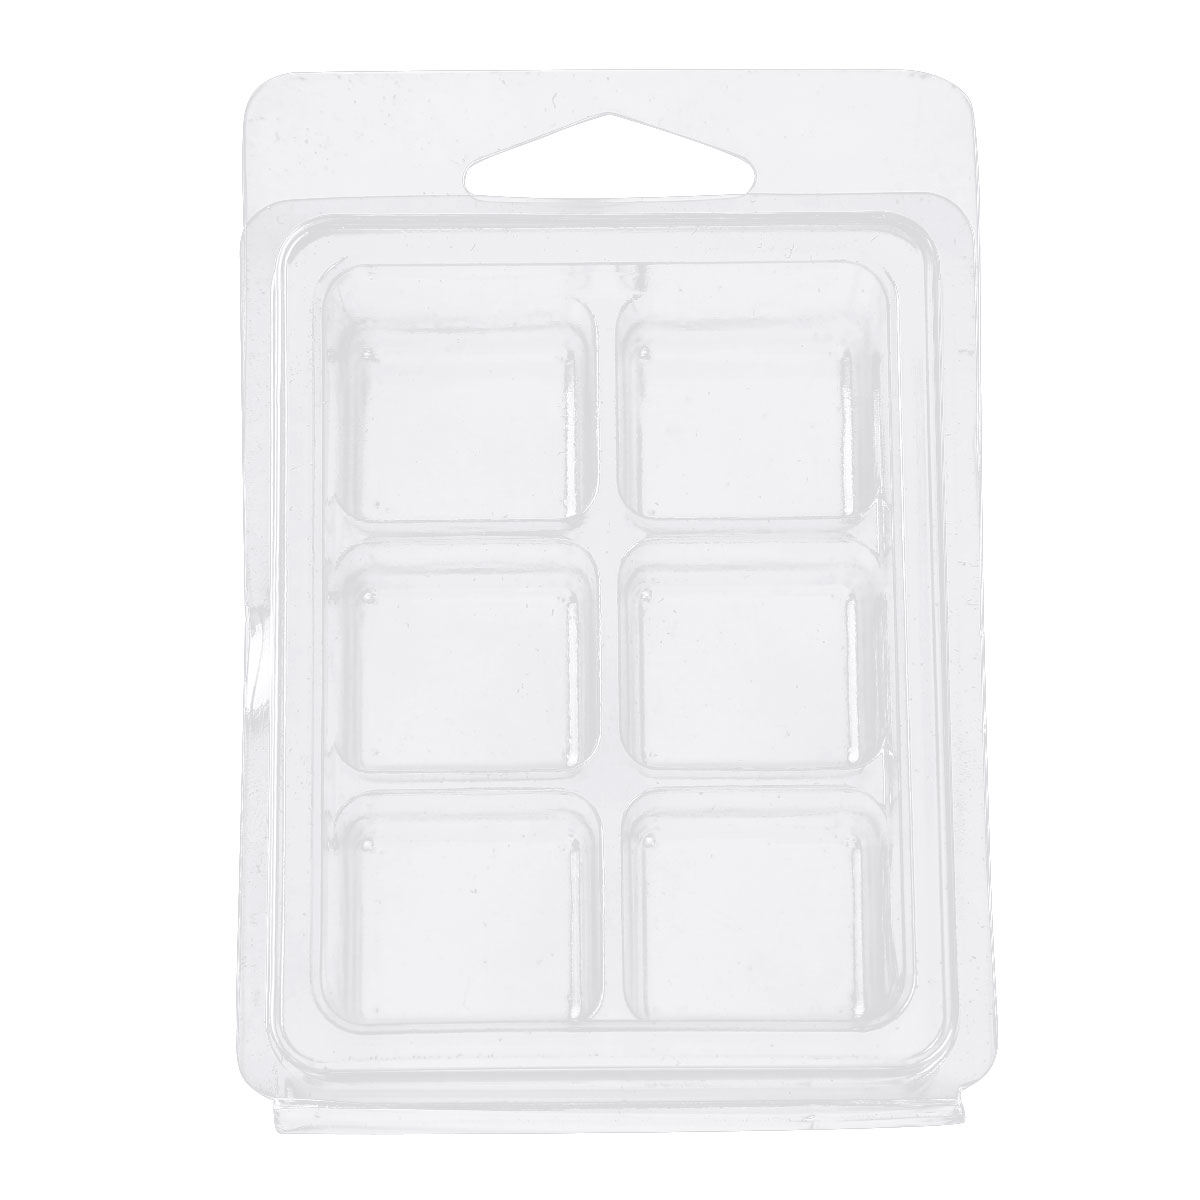 20Pcs Clear Wax Melt Molds With Wax Melt Clamshells for Wickless Wax Melt Candle